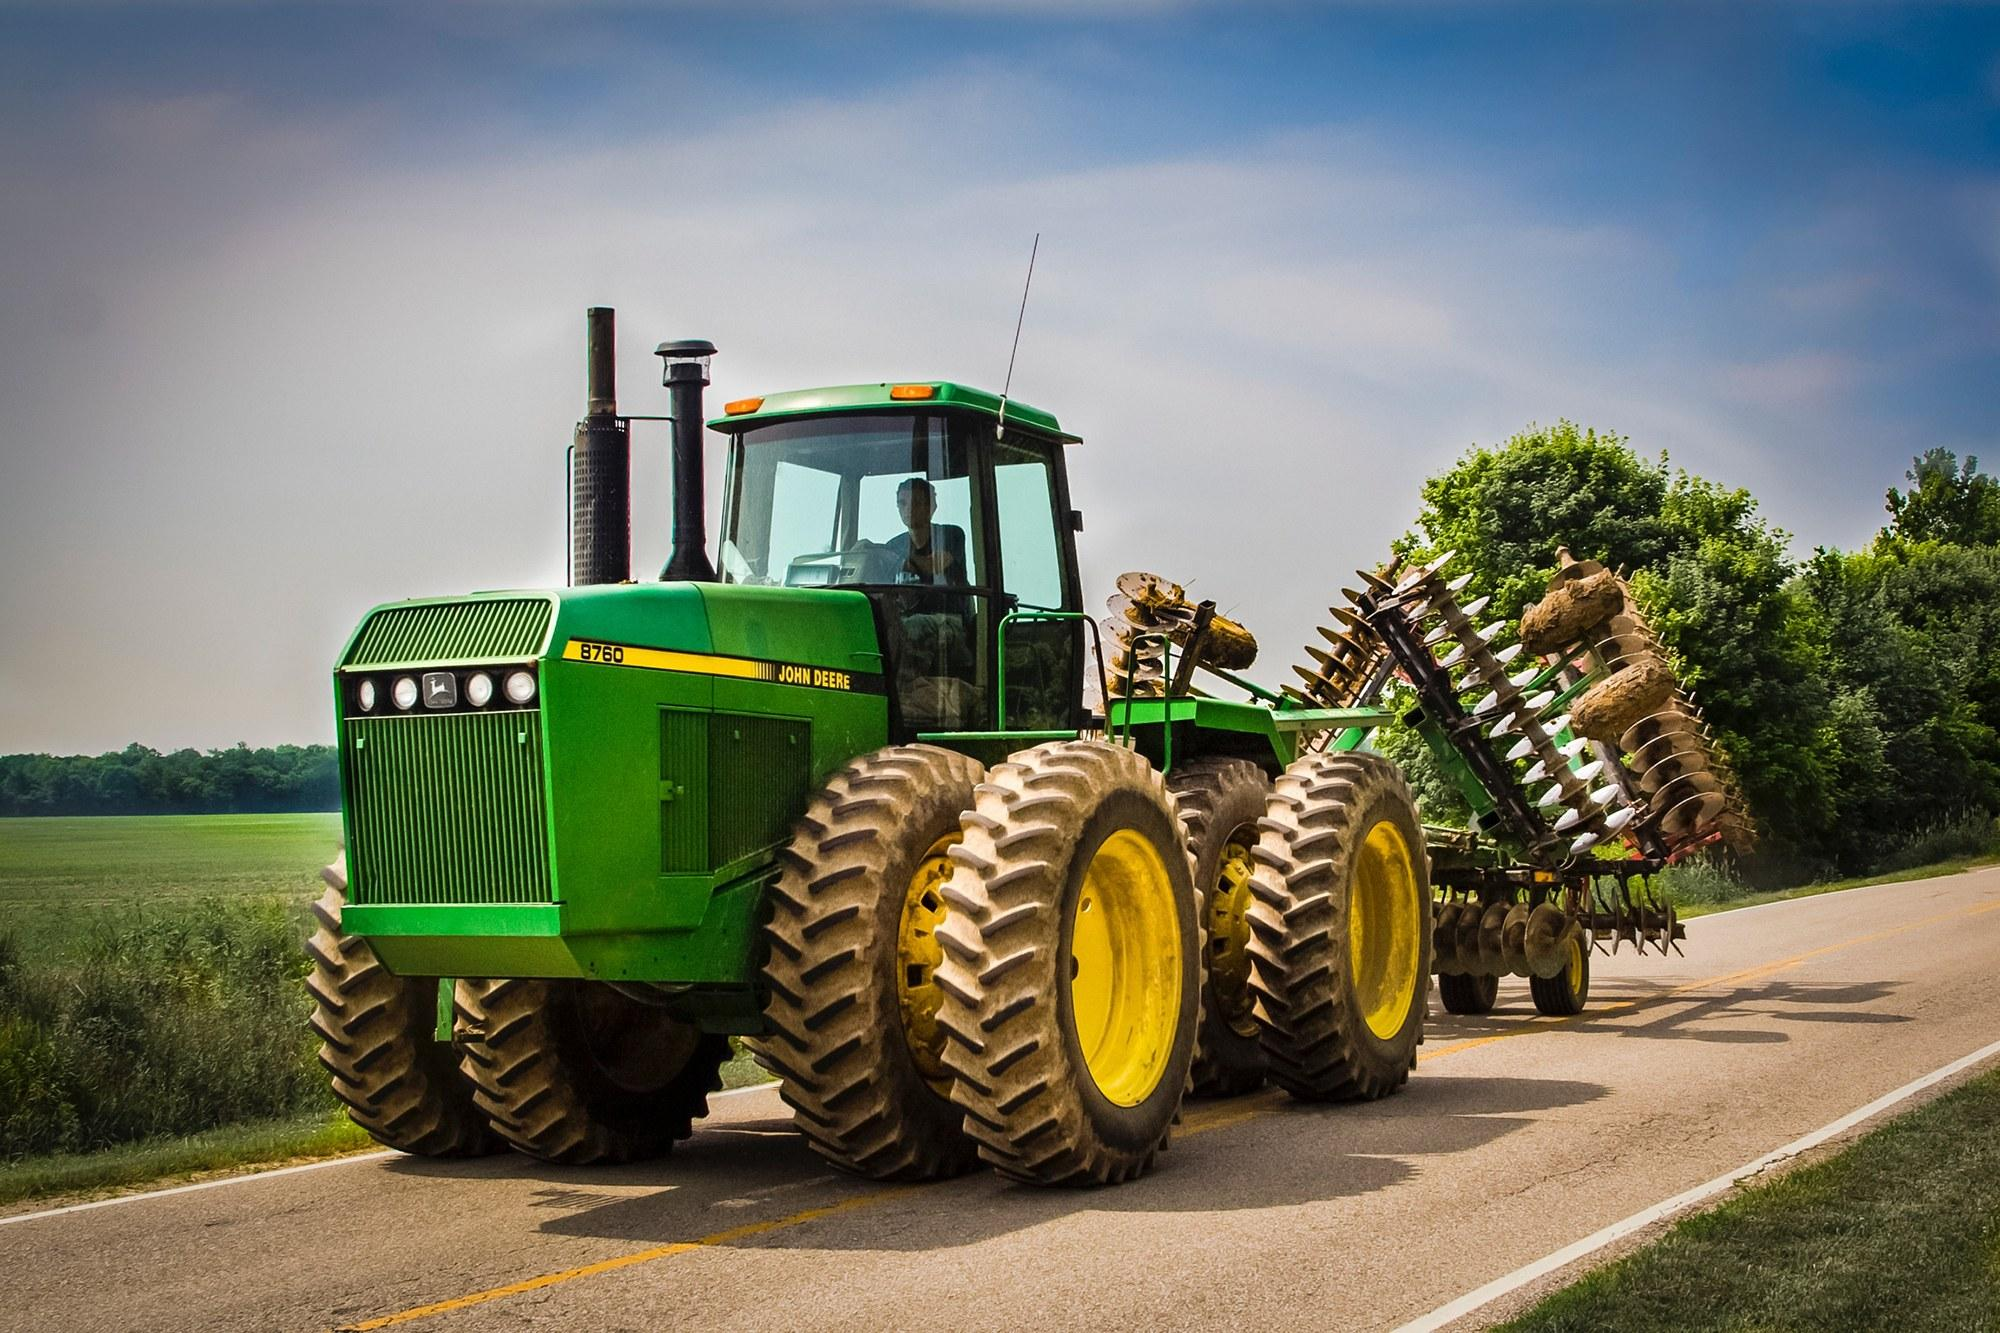 Deere: A Quality Company At Not So Fair Price